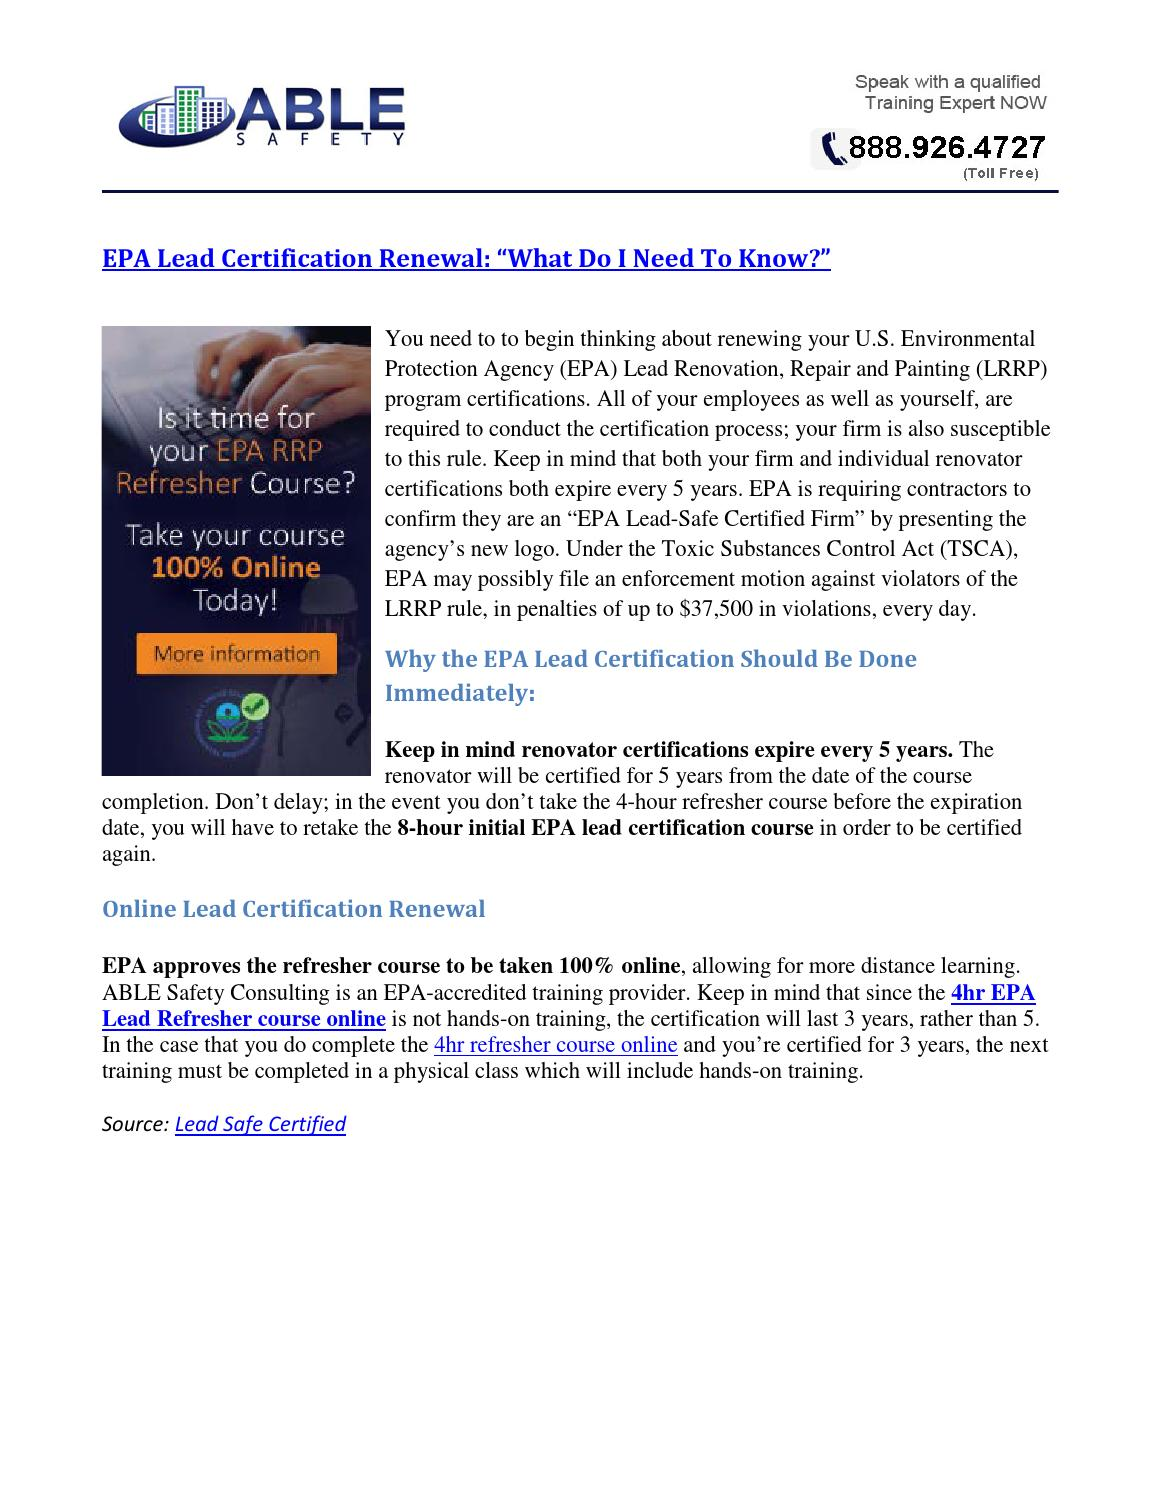 Epa Lead Certification Renewal What Do I Need To Know By John